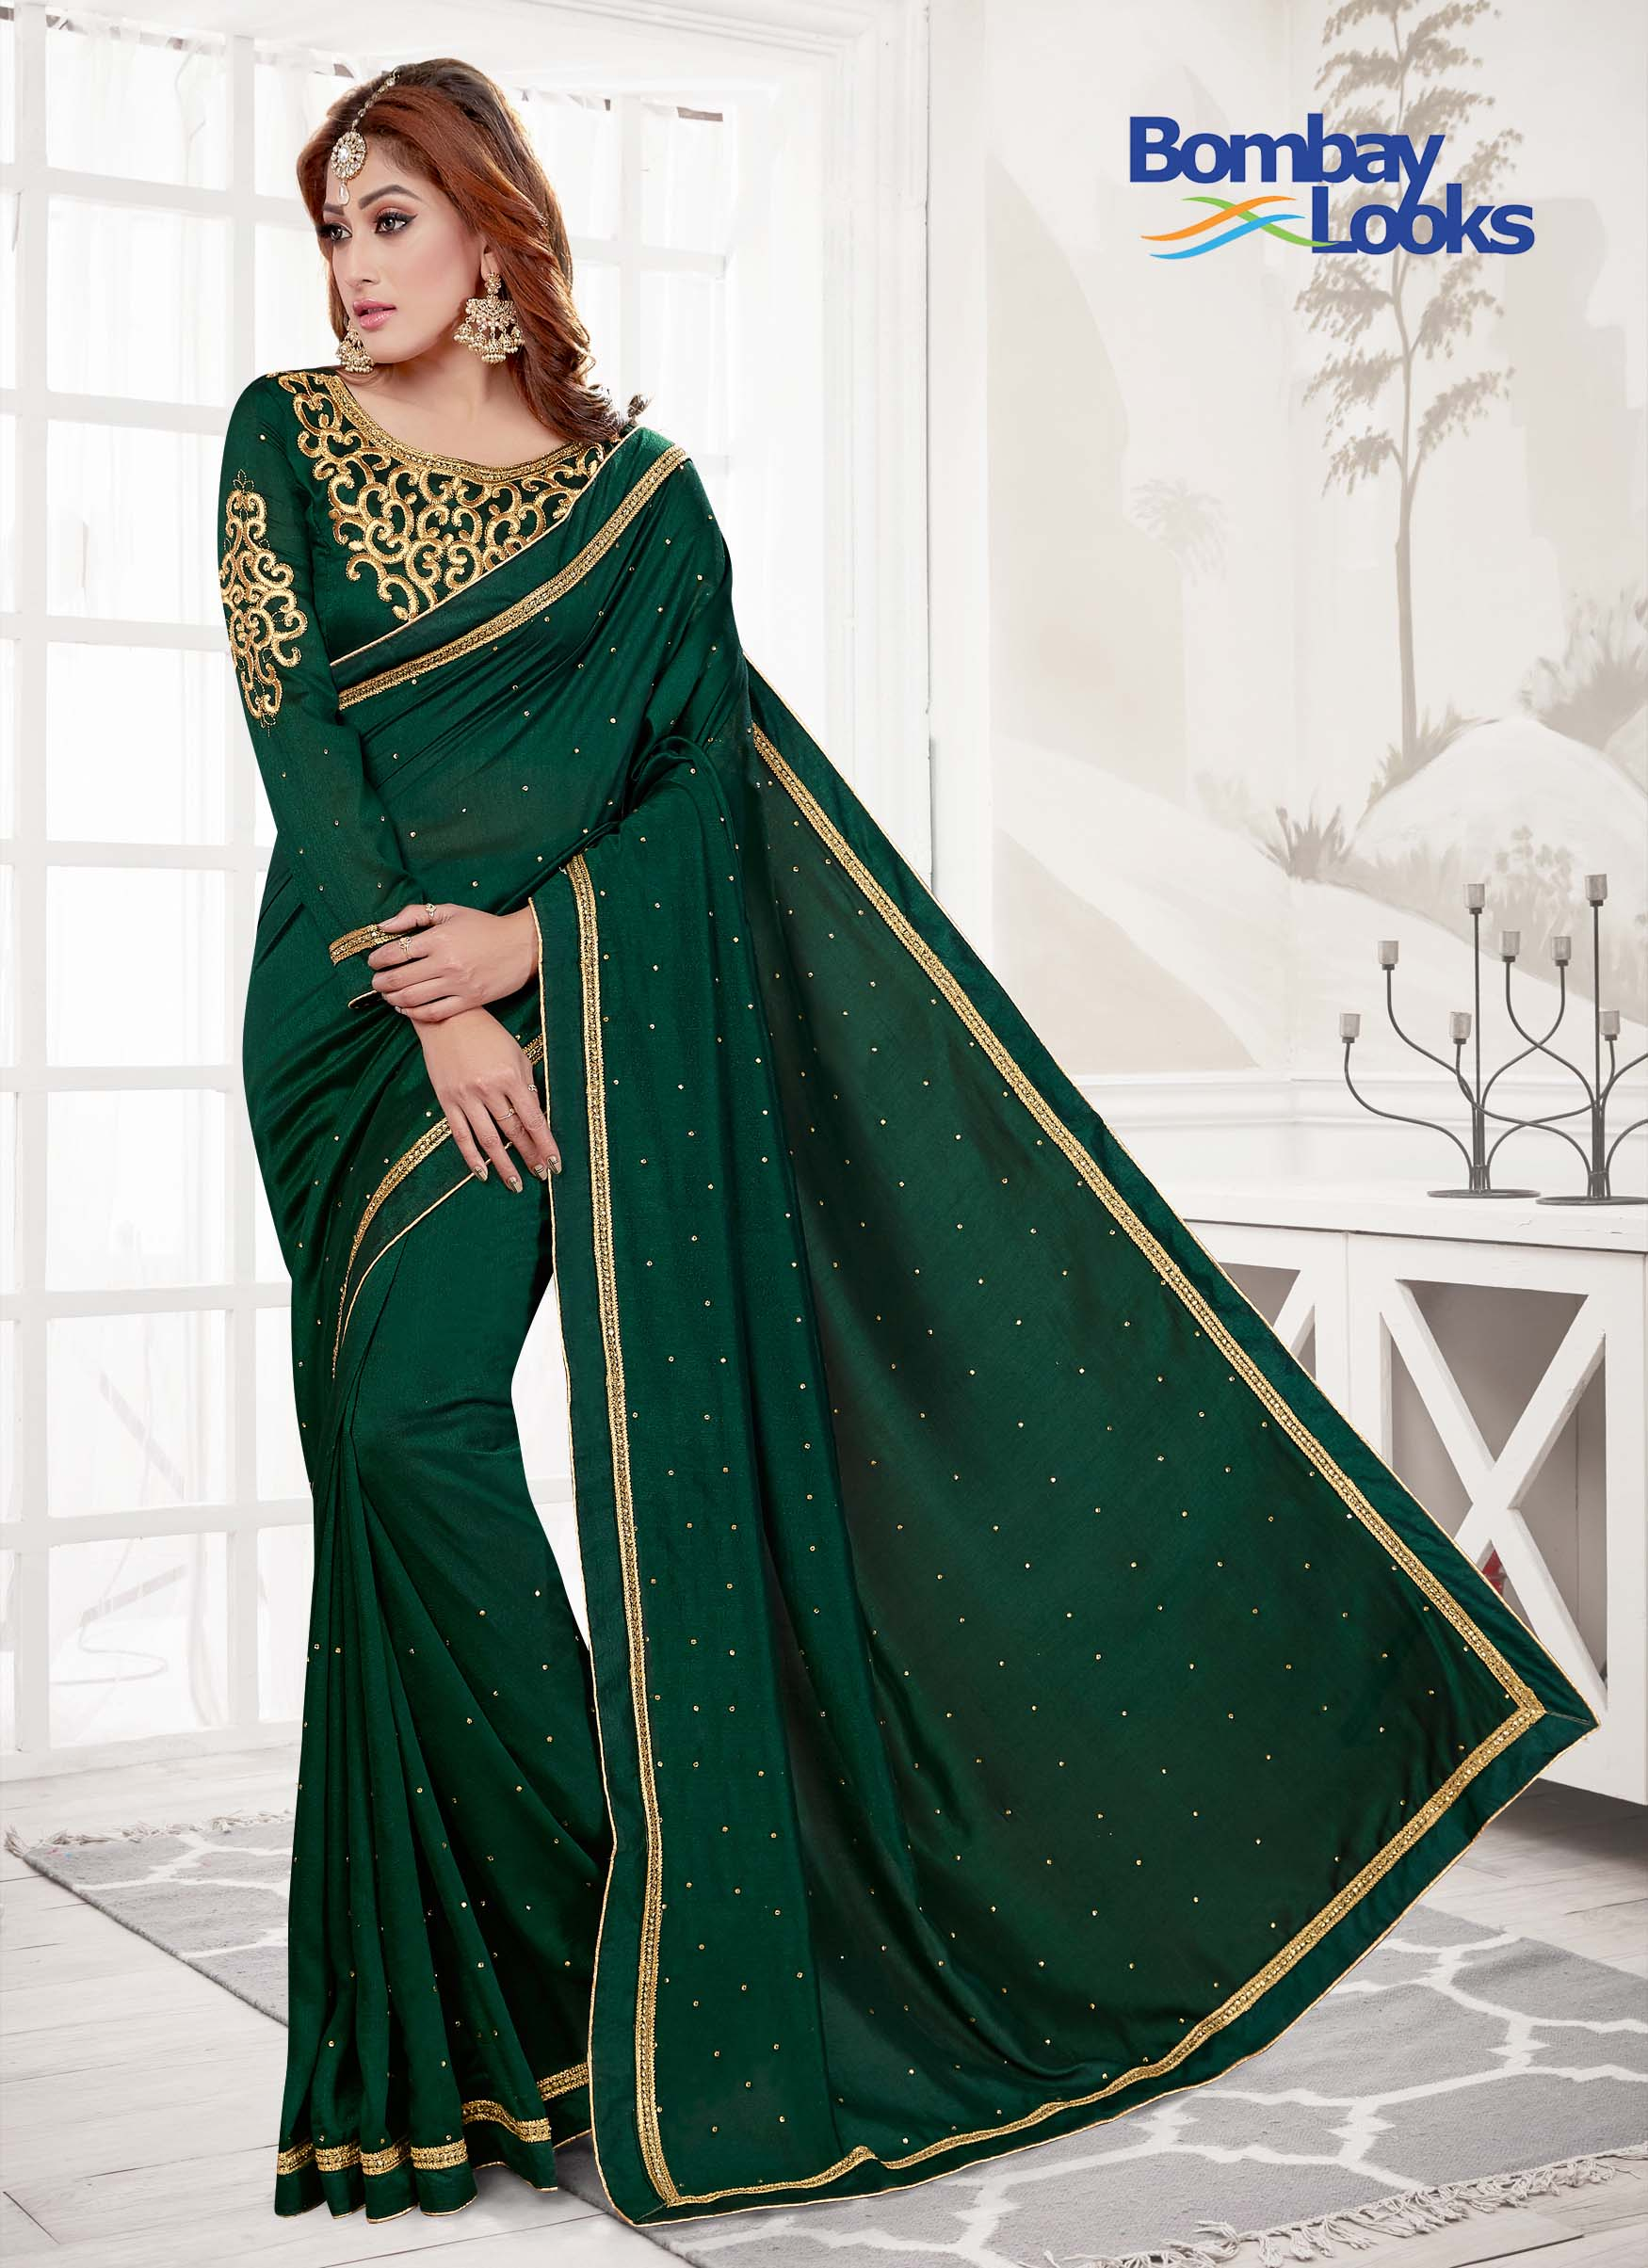 Designer classy  Saree in Emerald Green shade with embroidery blouse